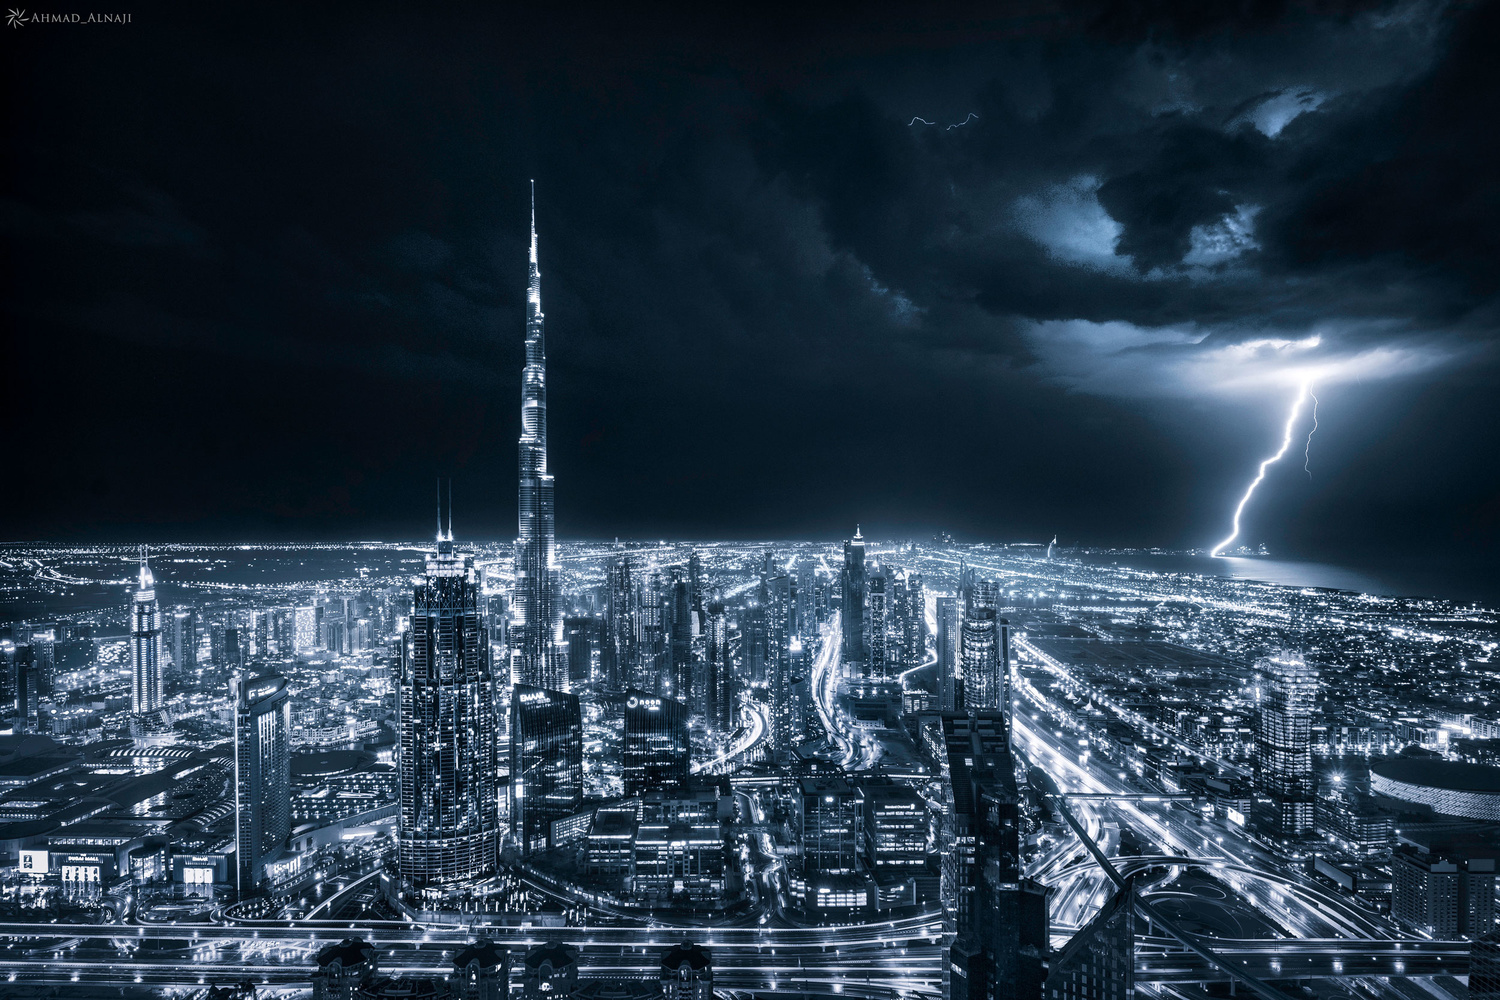 A Night in Dubai by Ahmad Alnaji